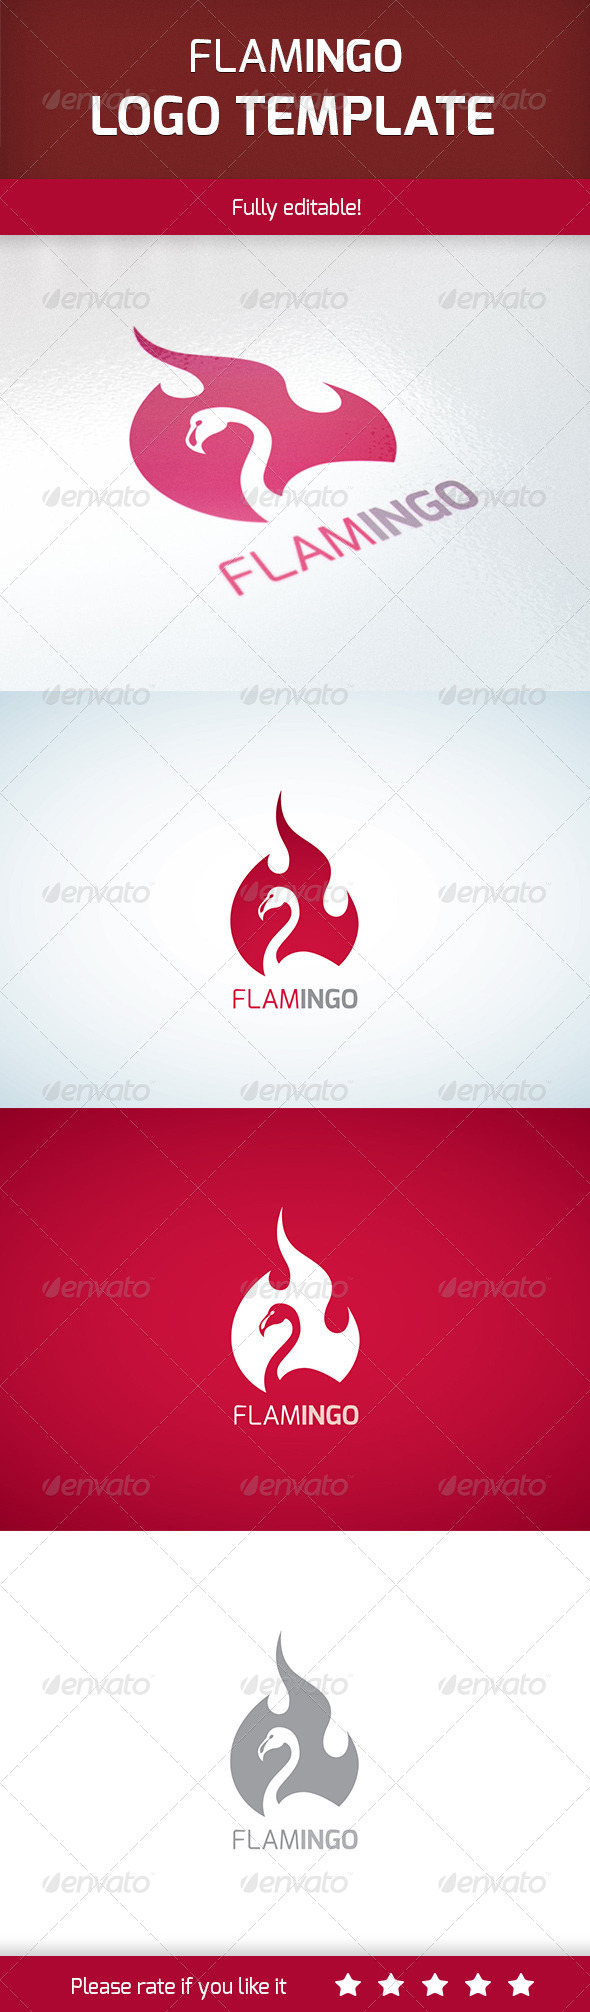 GraphicRiver Flamingo 7017546